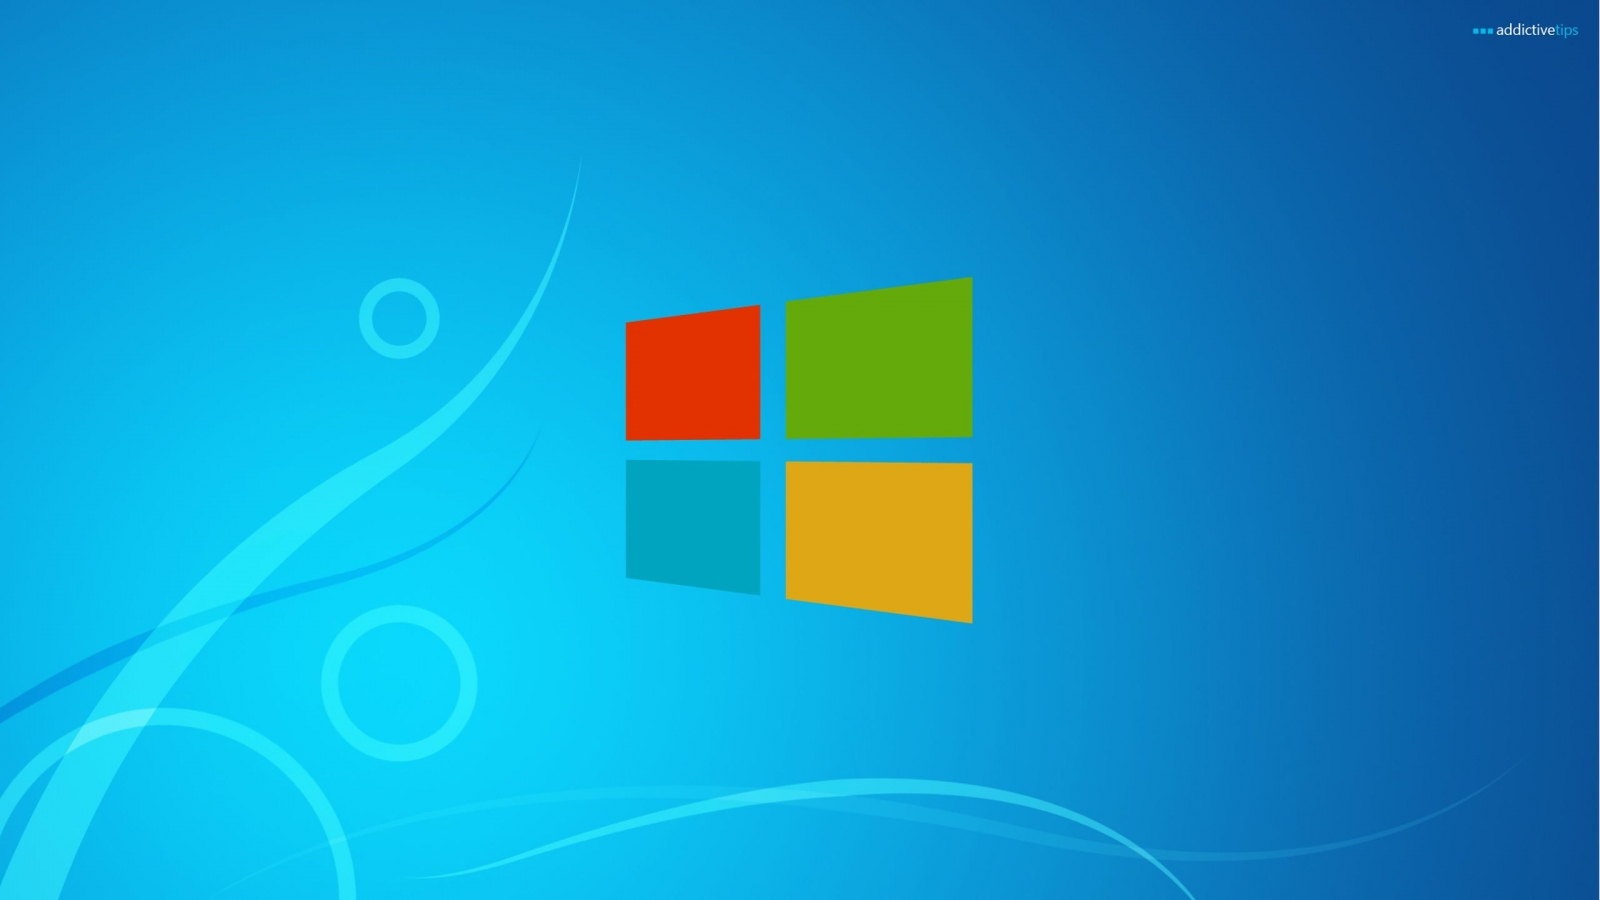 windows-8-logo-with-blue-wallpaper-for-1600x900-9-260